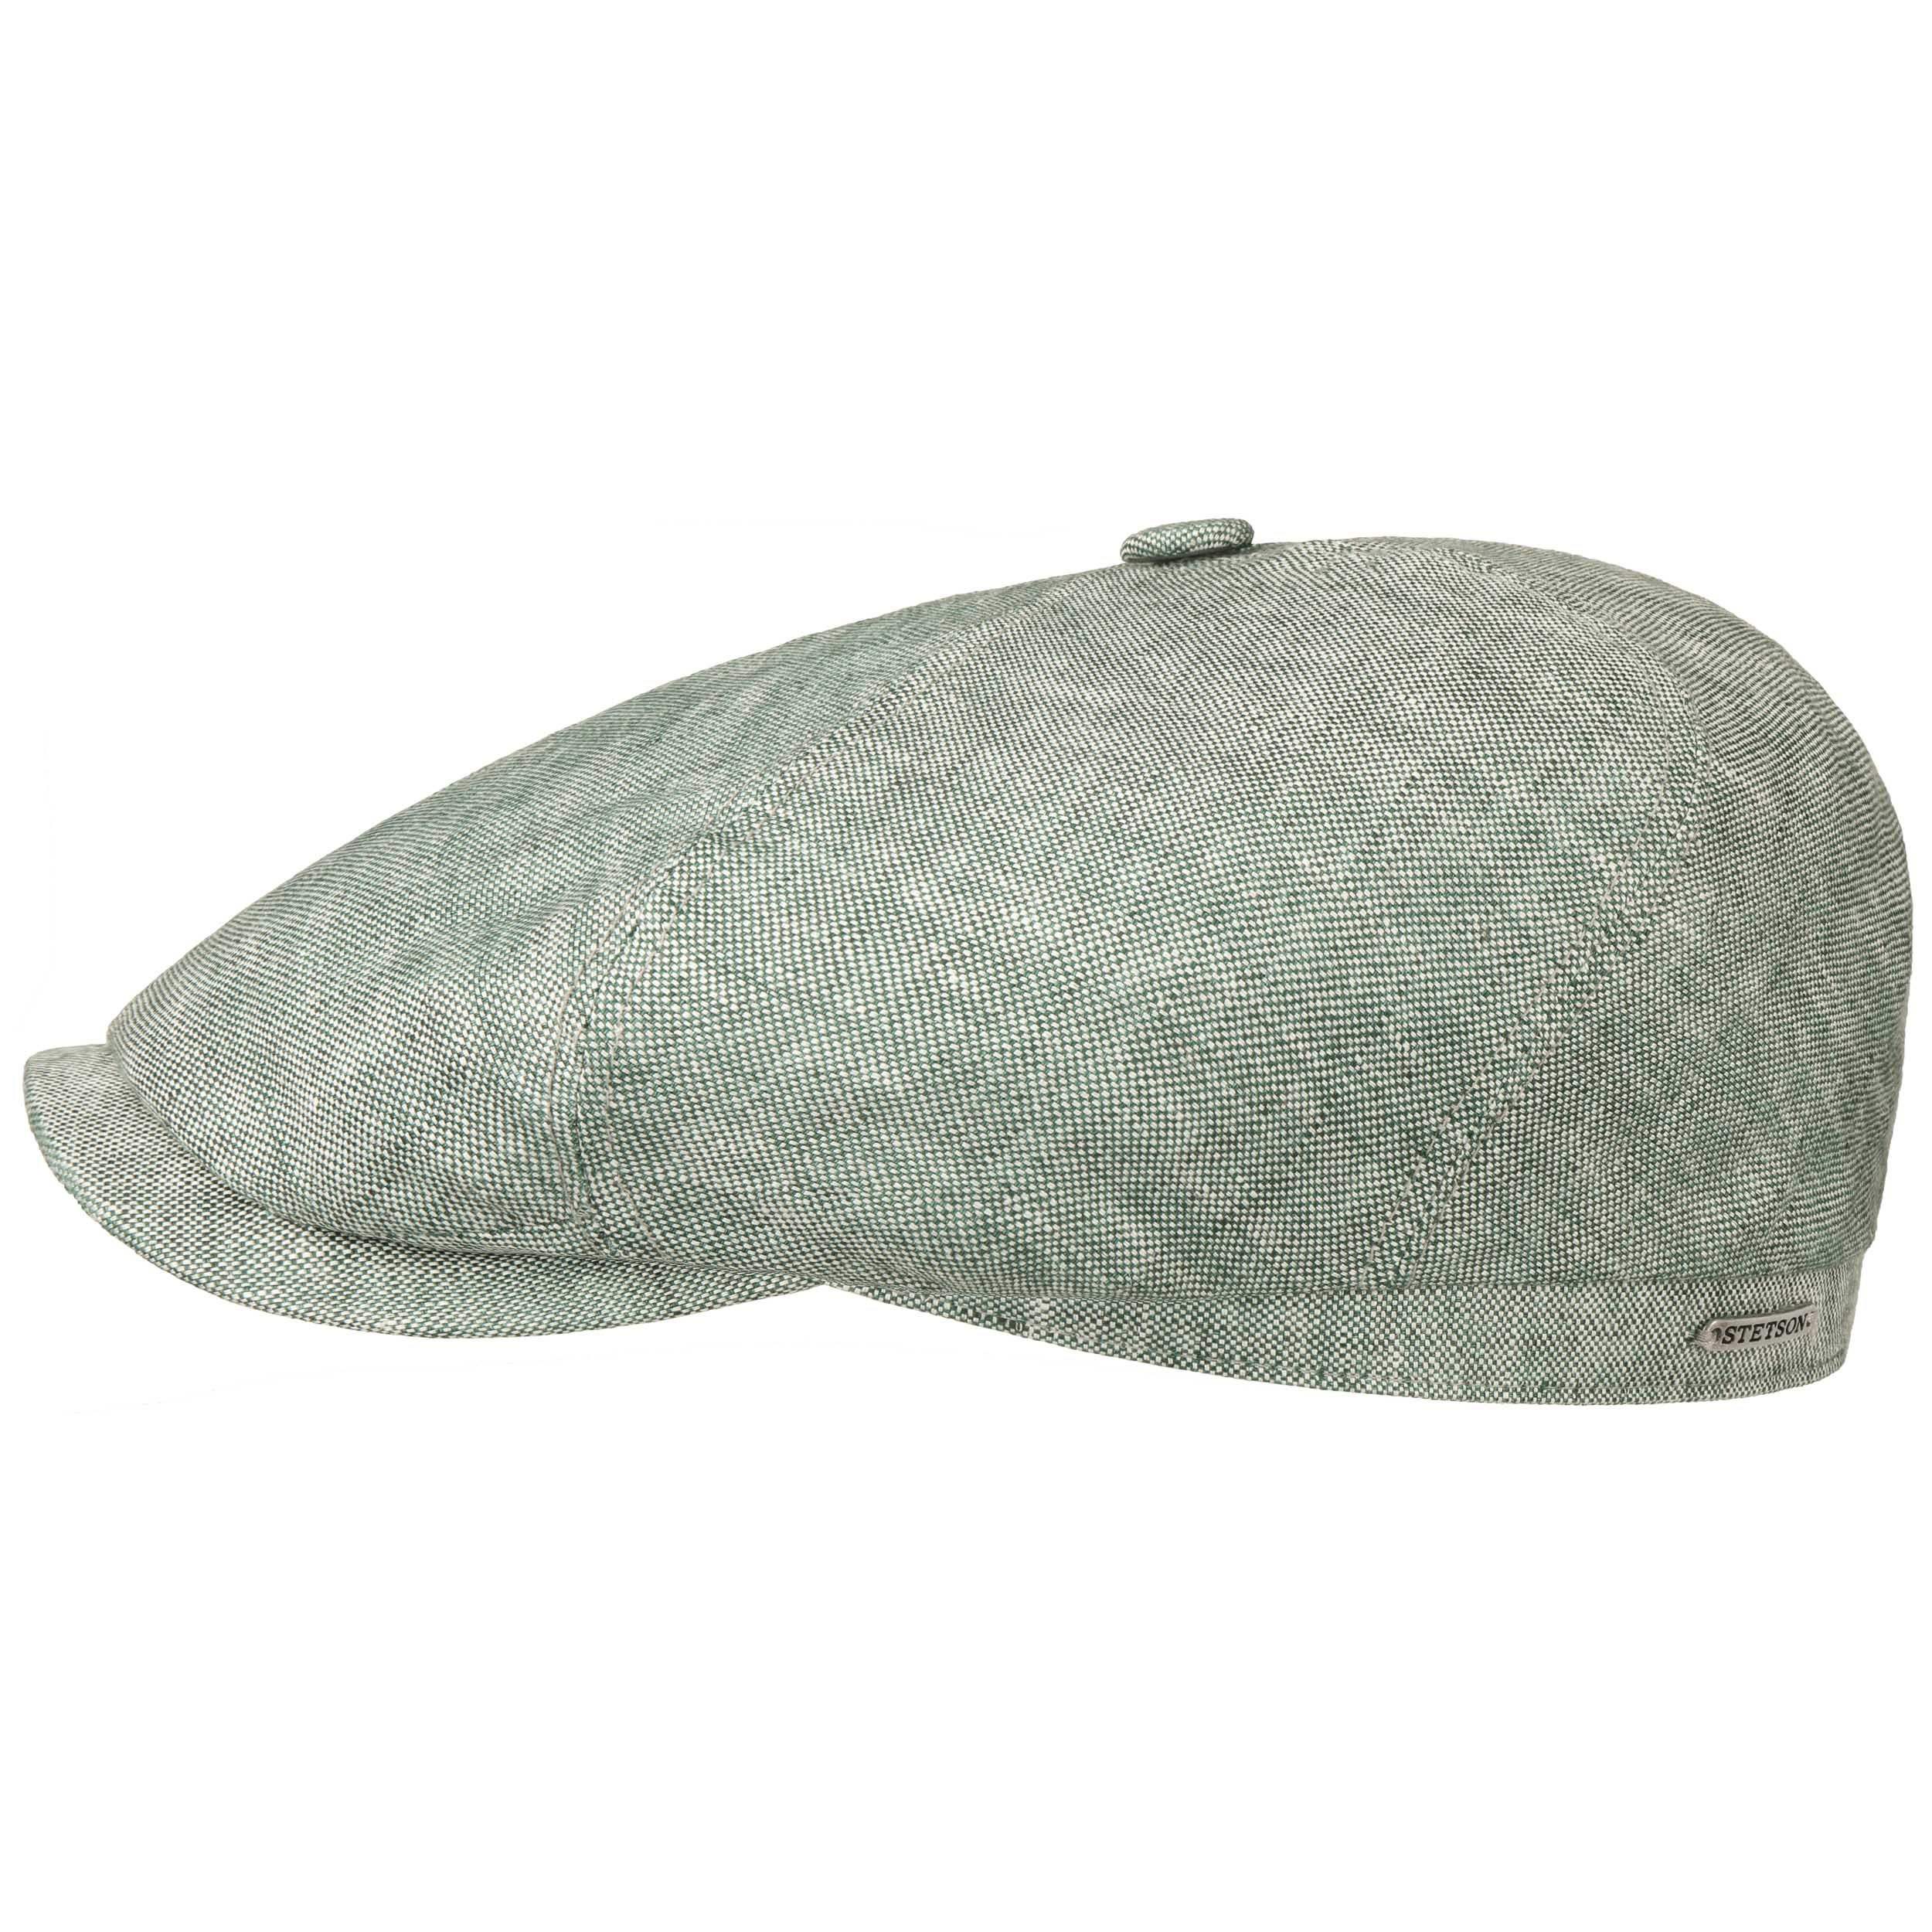 6 Panel Just Linen Flat Cap grey